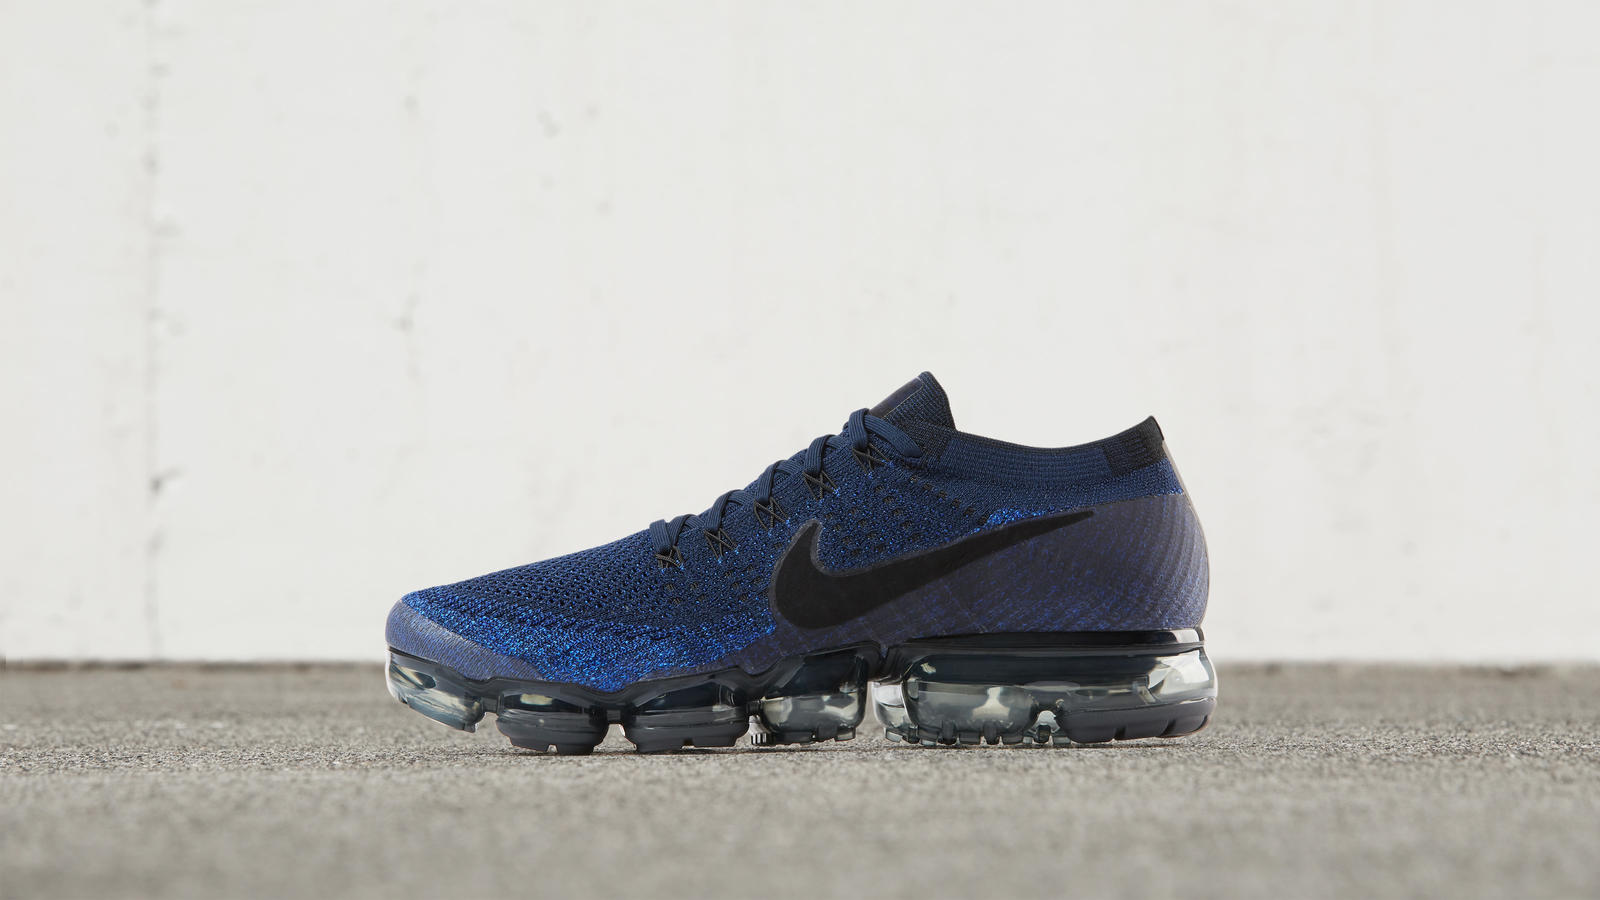 Air vapormax dark blue 1 hd 1600